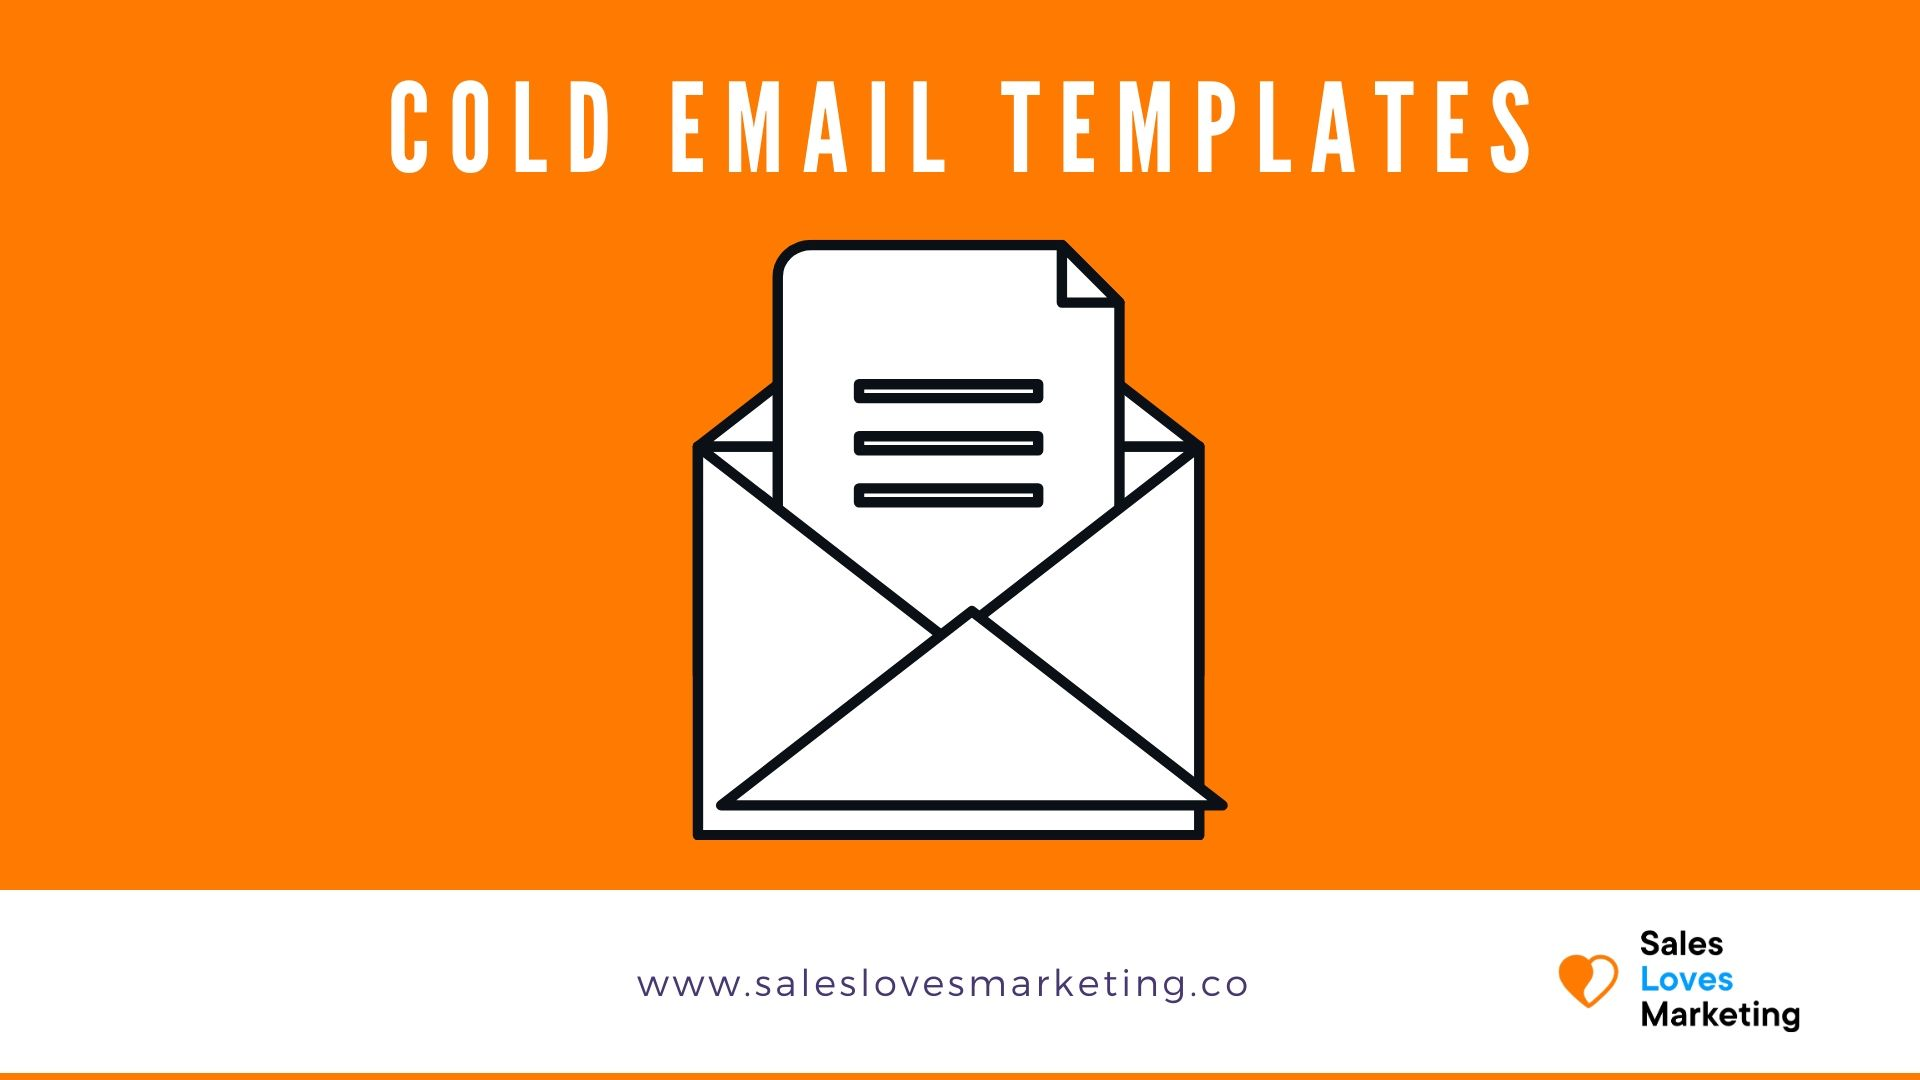 Get ready to go email templates for cold emails.